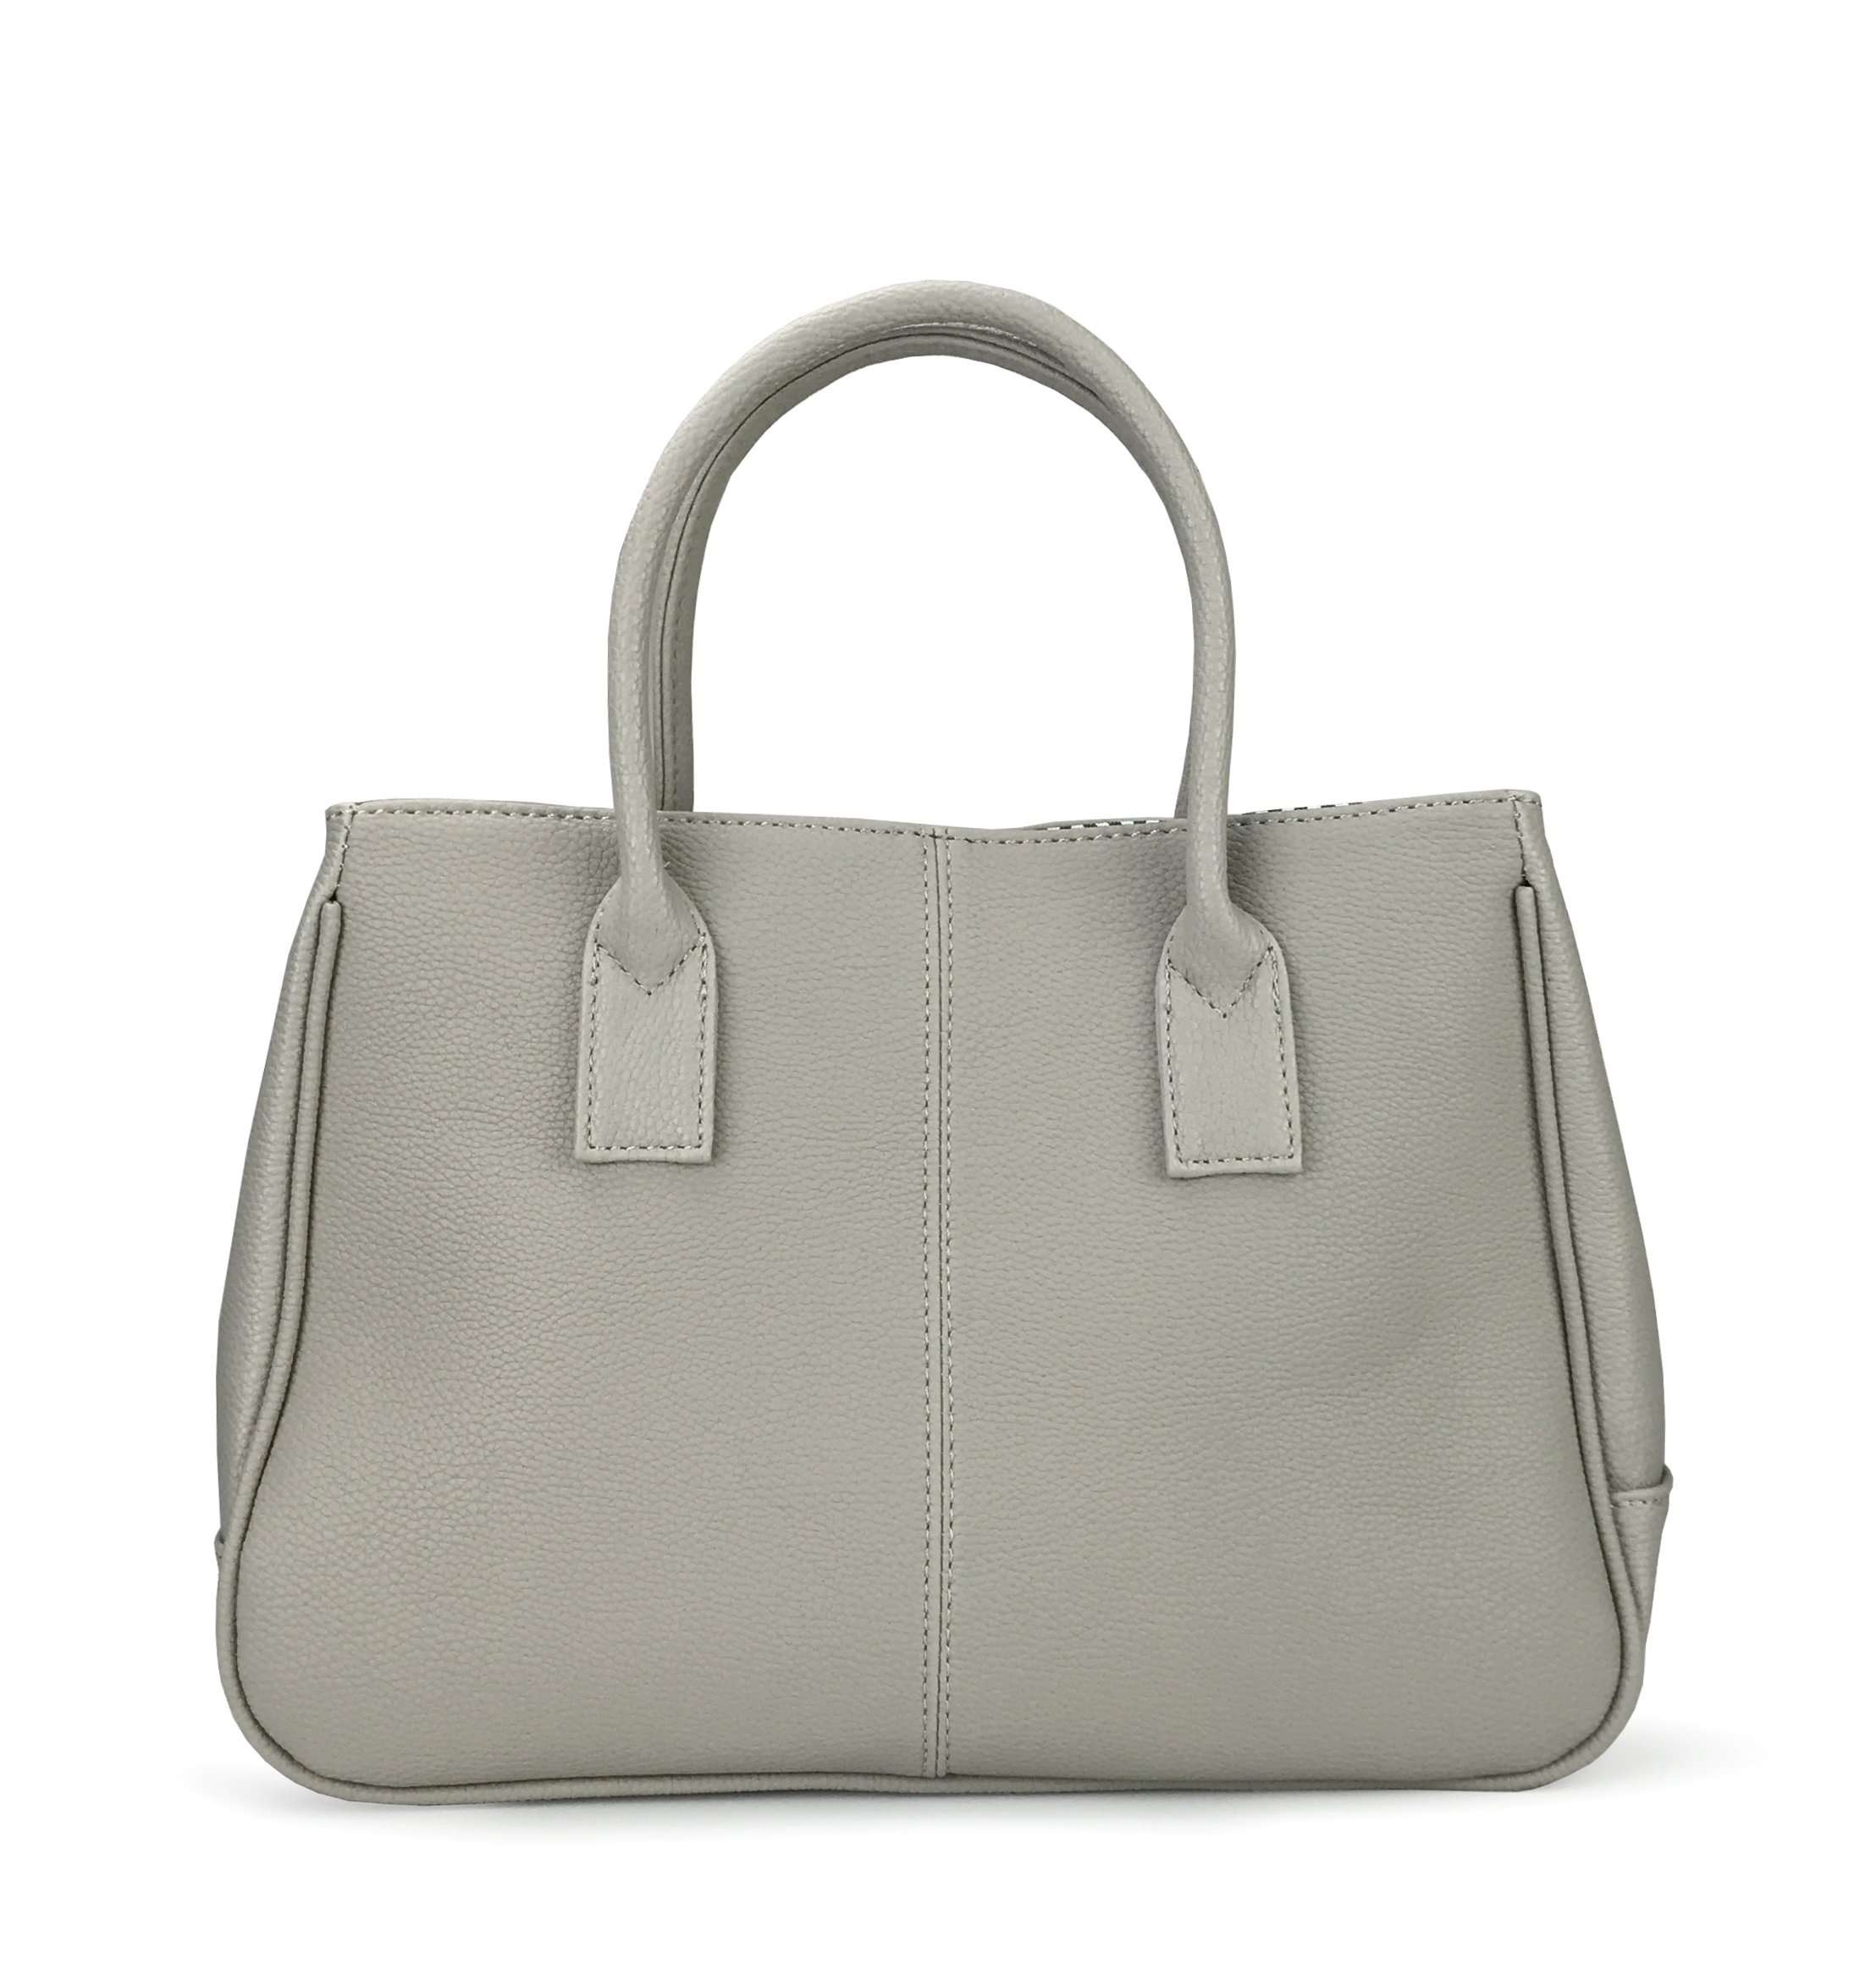 Hoxis Classical Office Lady Minimalist Pebbled Faux Leather Handbag Tote/Magnetic Snap Purse(Gray)